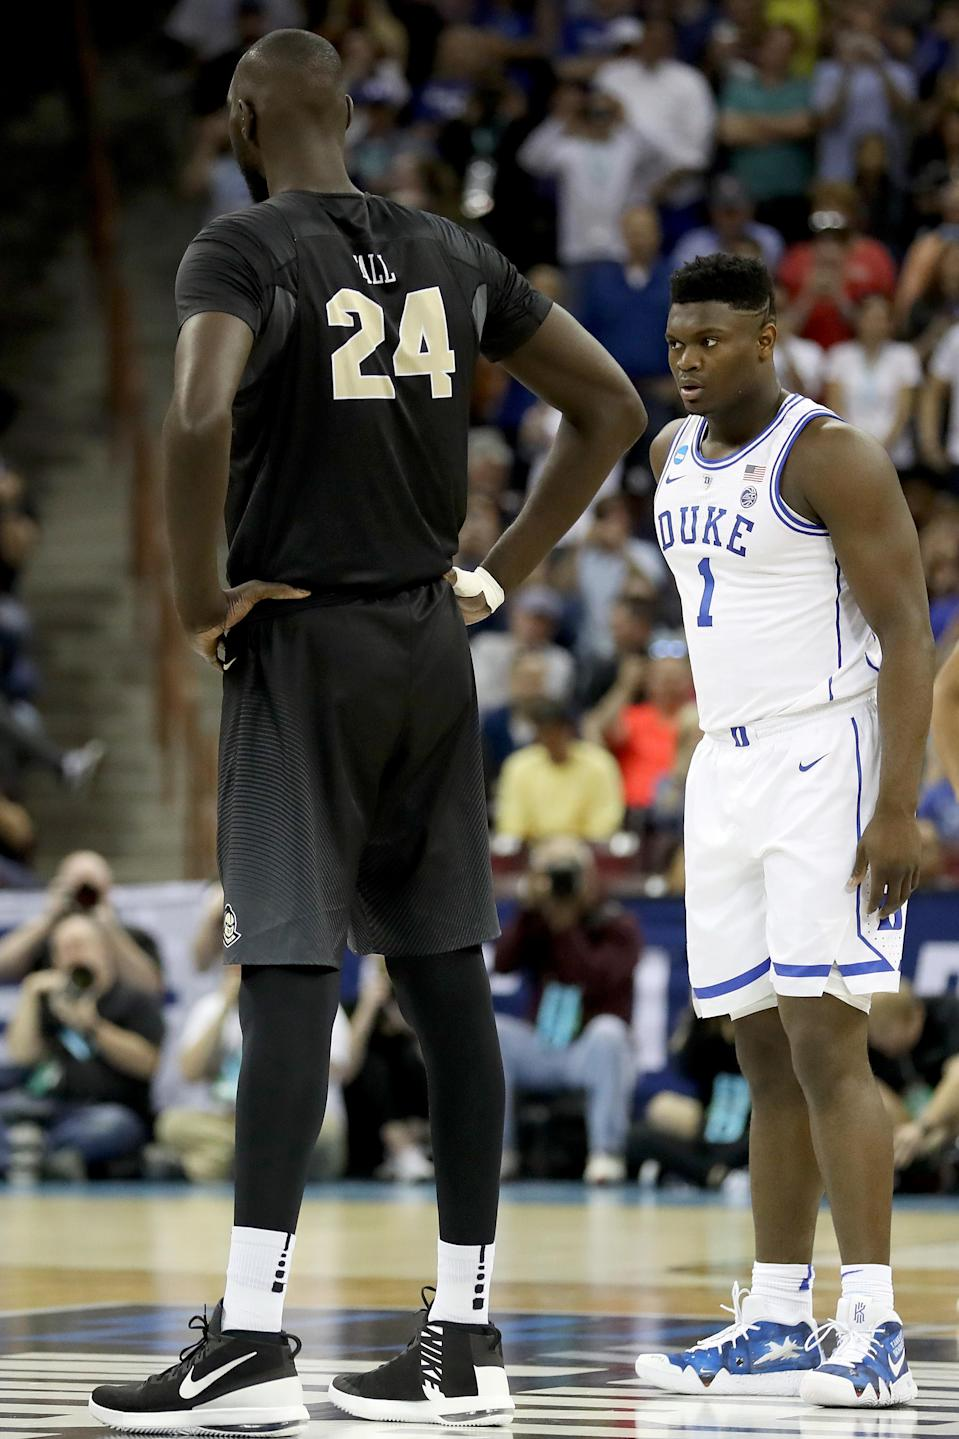 <p>Tacko Fall #24 of the UCF Knights and Zion Williamson #1 of the Duke Blue Devils look on during the first half in the second round game of the 2019 NCAA Men's Basketball Tournament at Colonial Life Arena on March 24, 2019 in Columbia, South Carolina. (Photo by Streeter Lecka/Getty Images) </p>